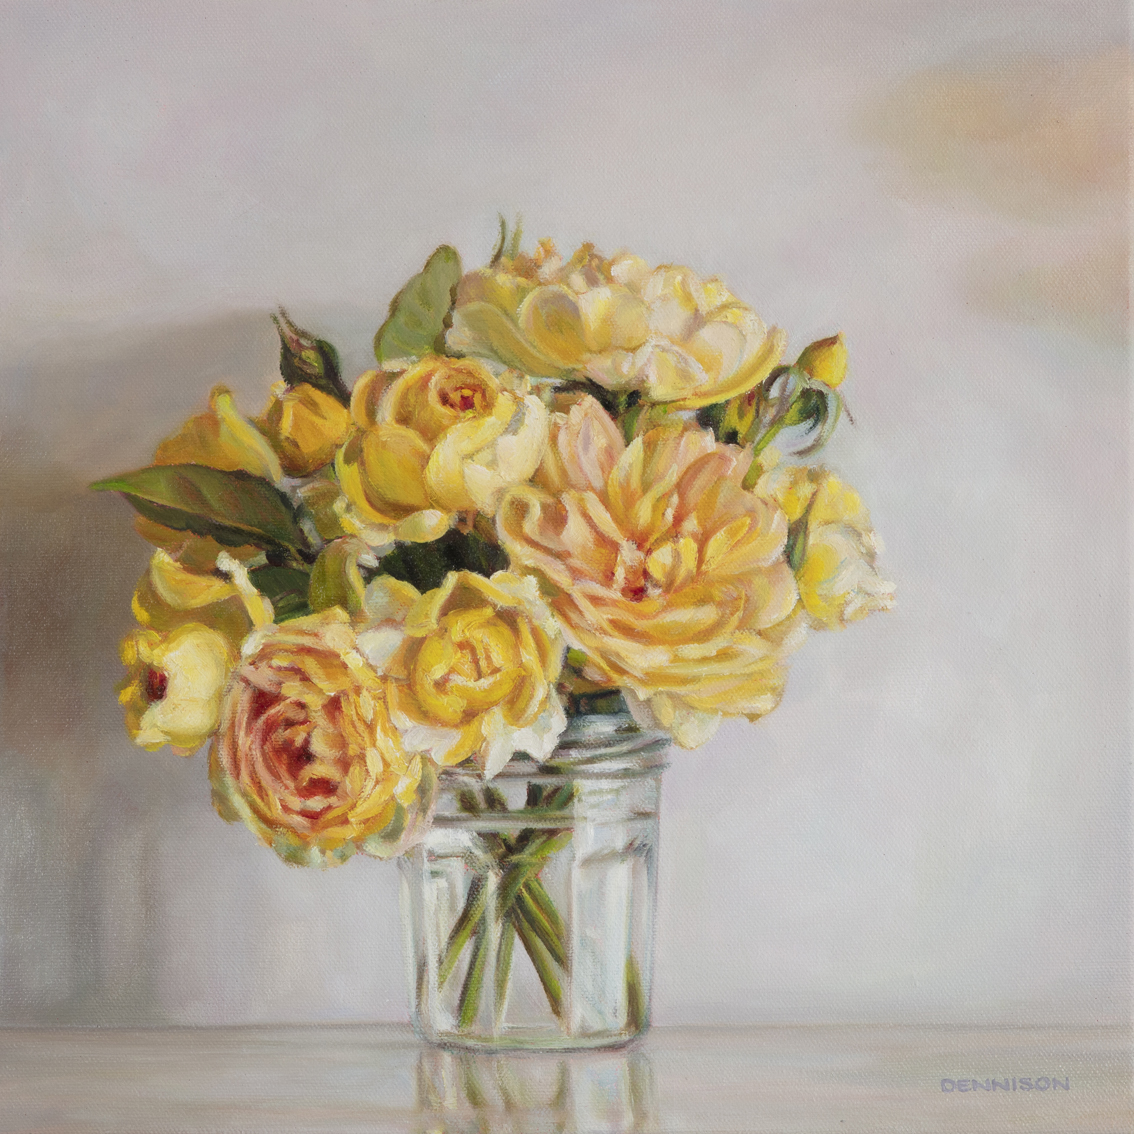 The Yellow Roses we brought from Stoneville   Oil on Canvas, 35 x 35cm, SOLD